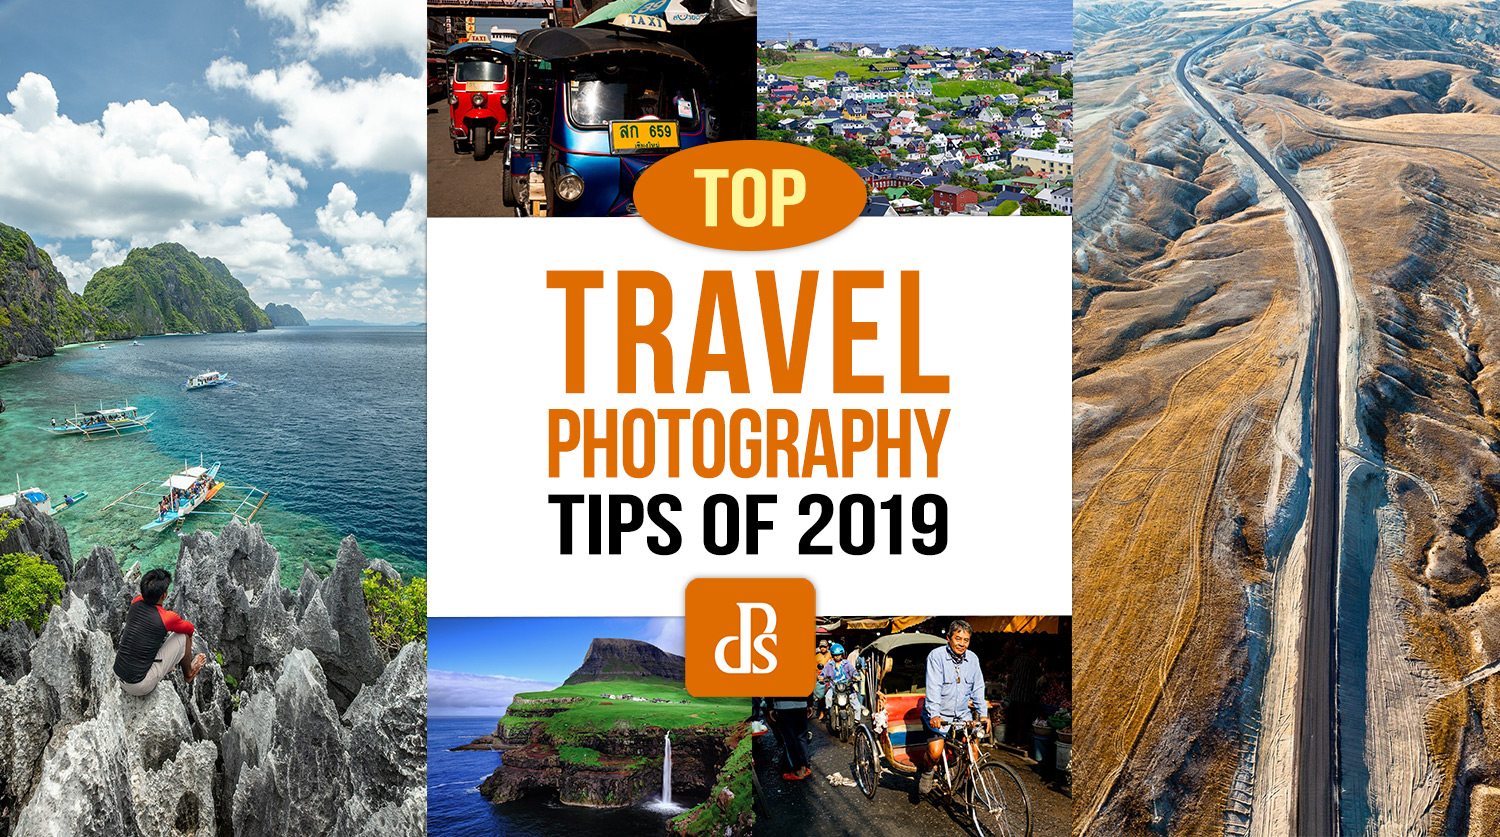 dPS-Top-Travel-Photography-Tips-2019